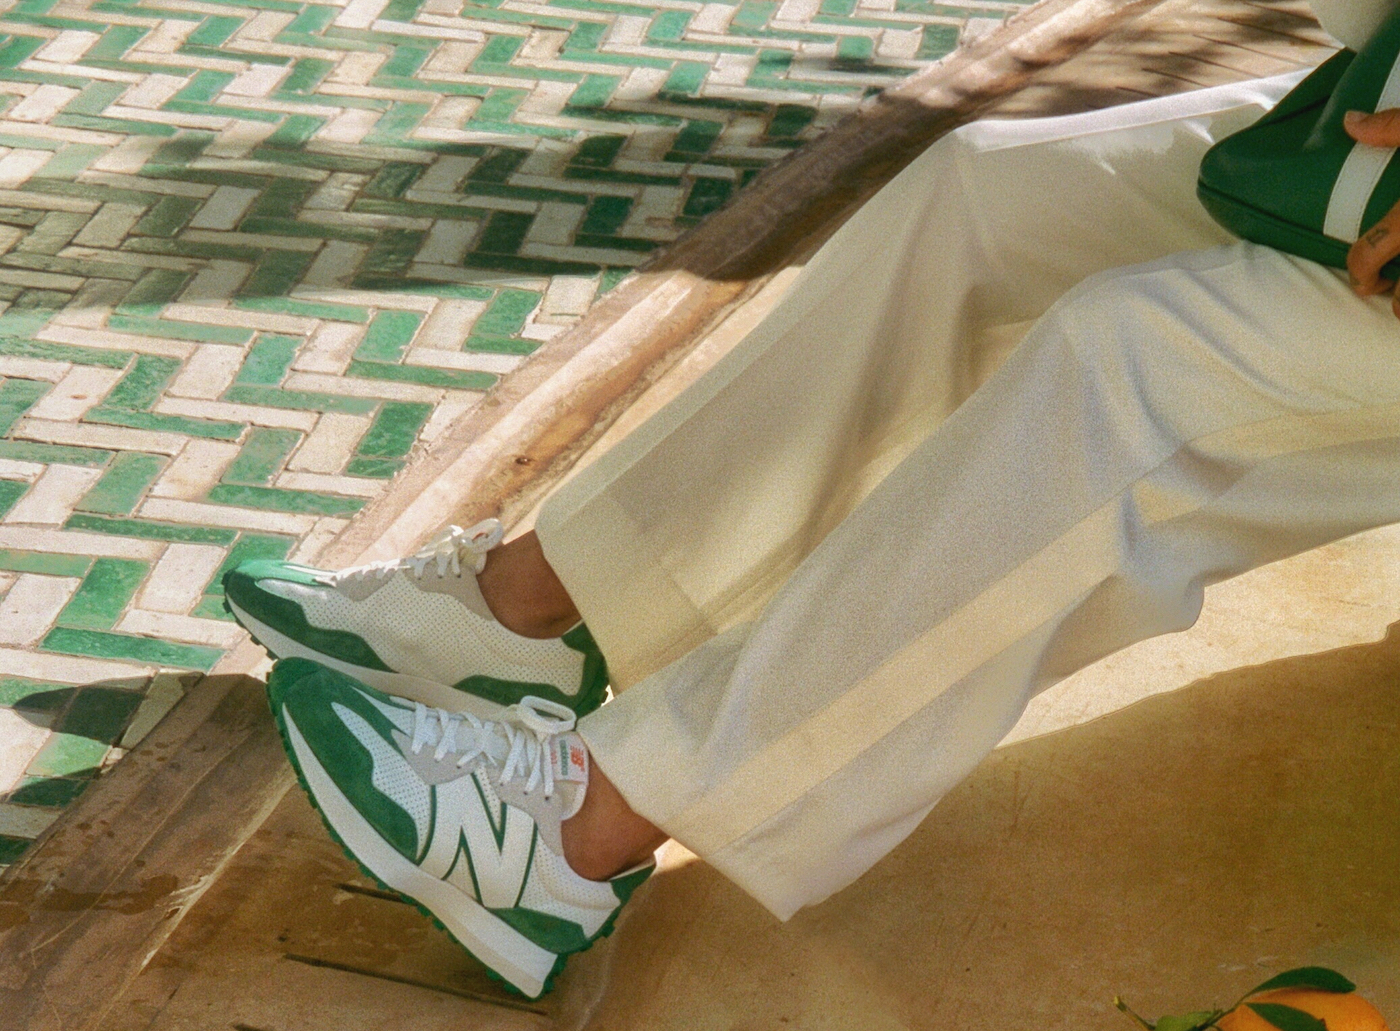 Take A Look At The Casablanca x New Balance 327 Sneakers